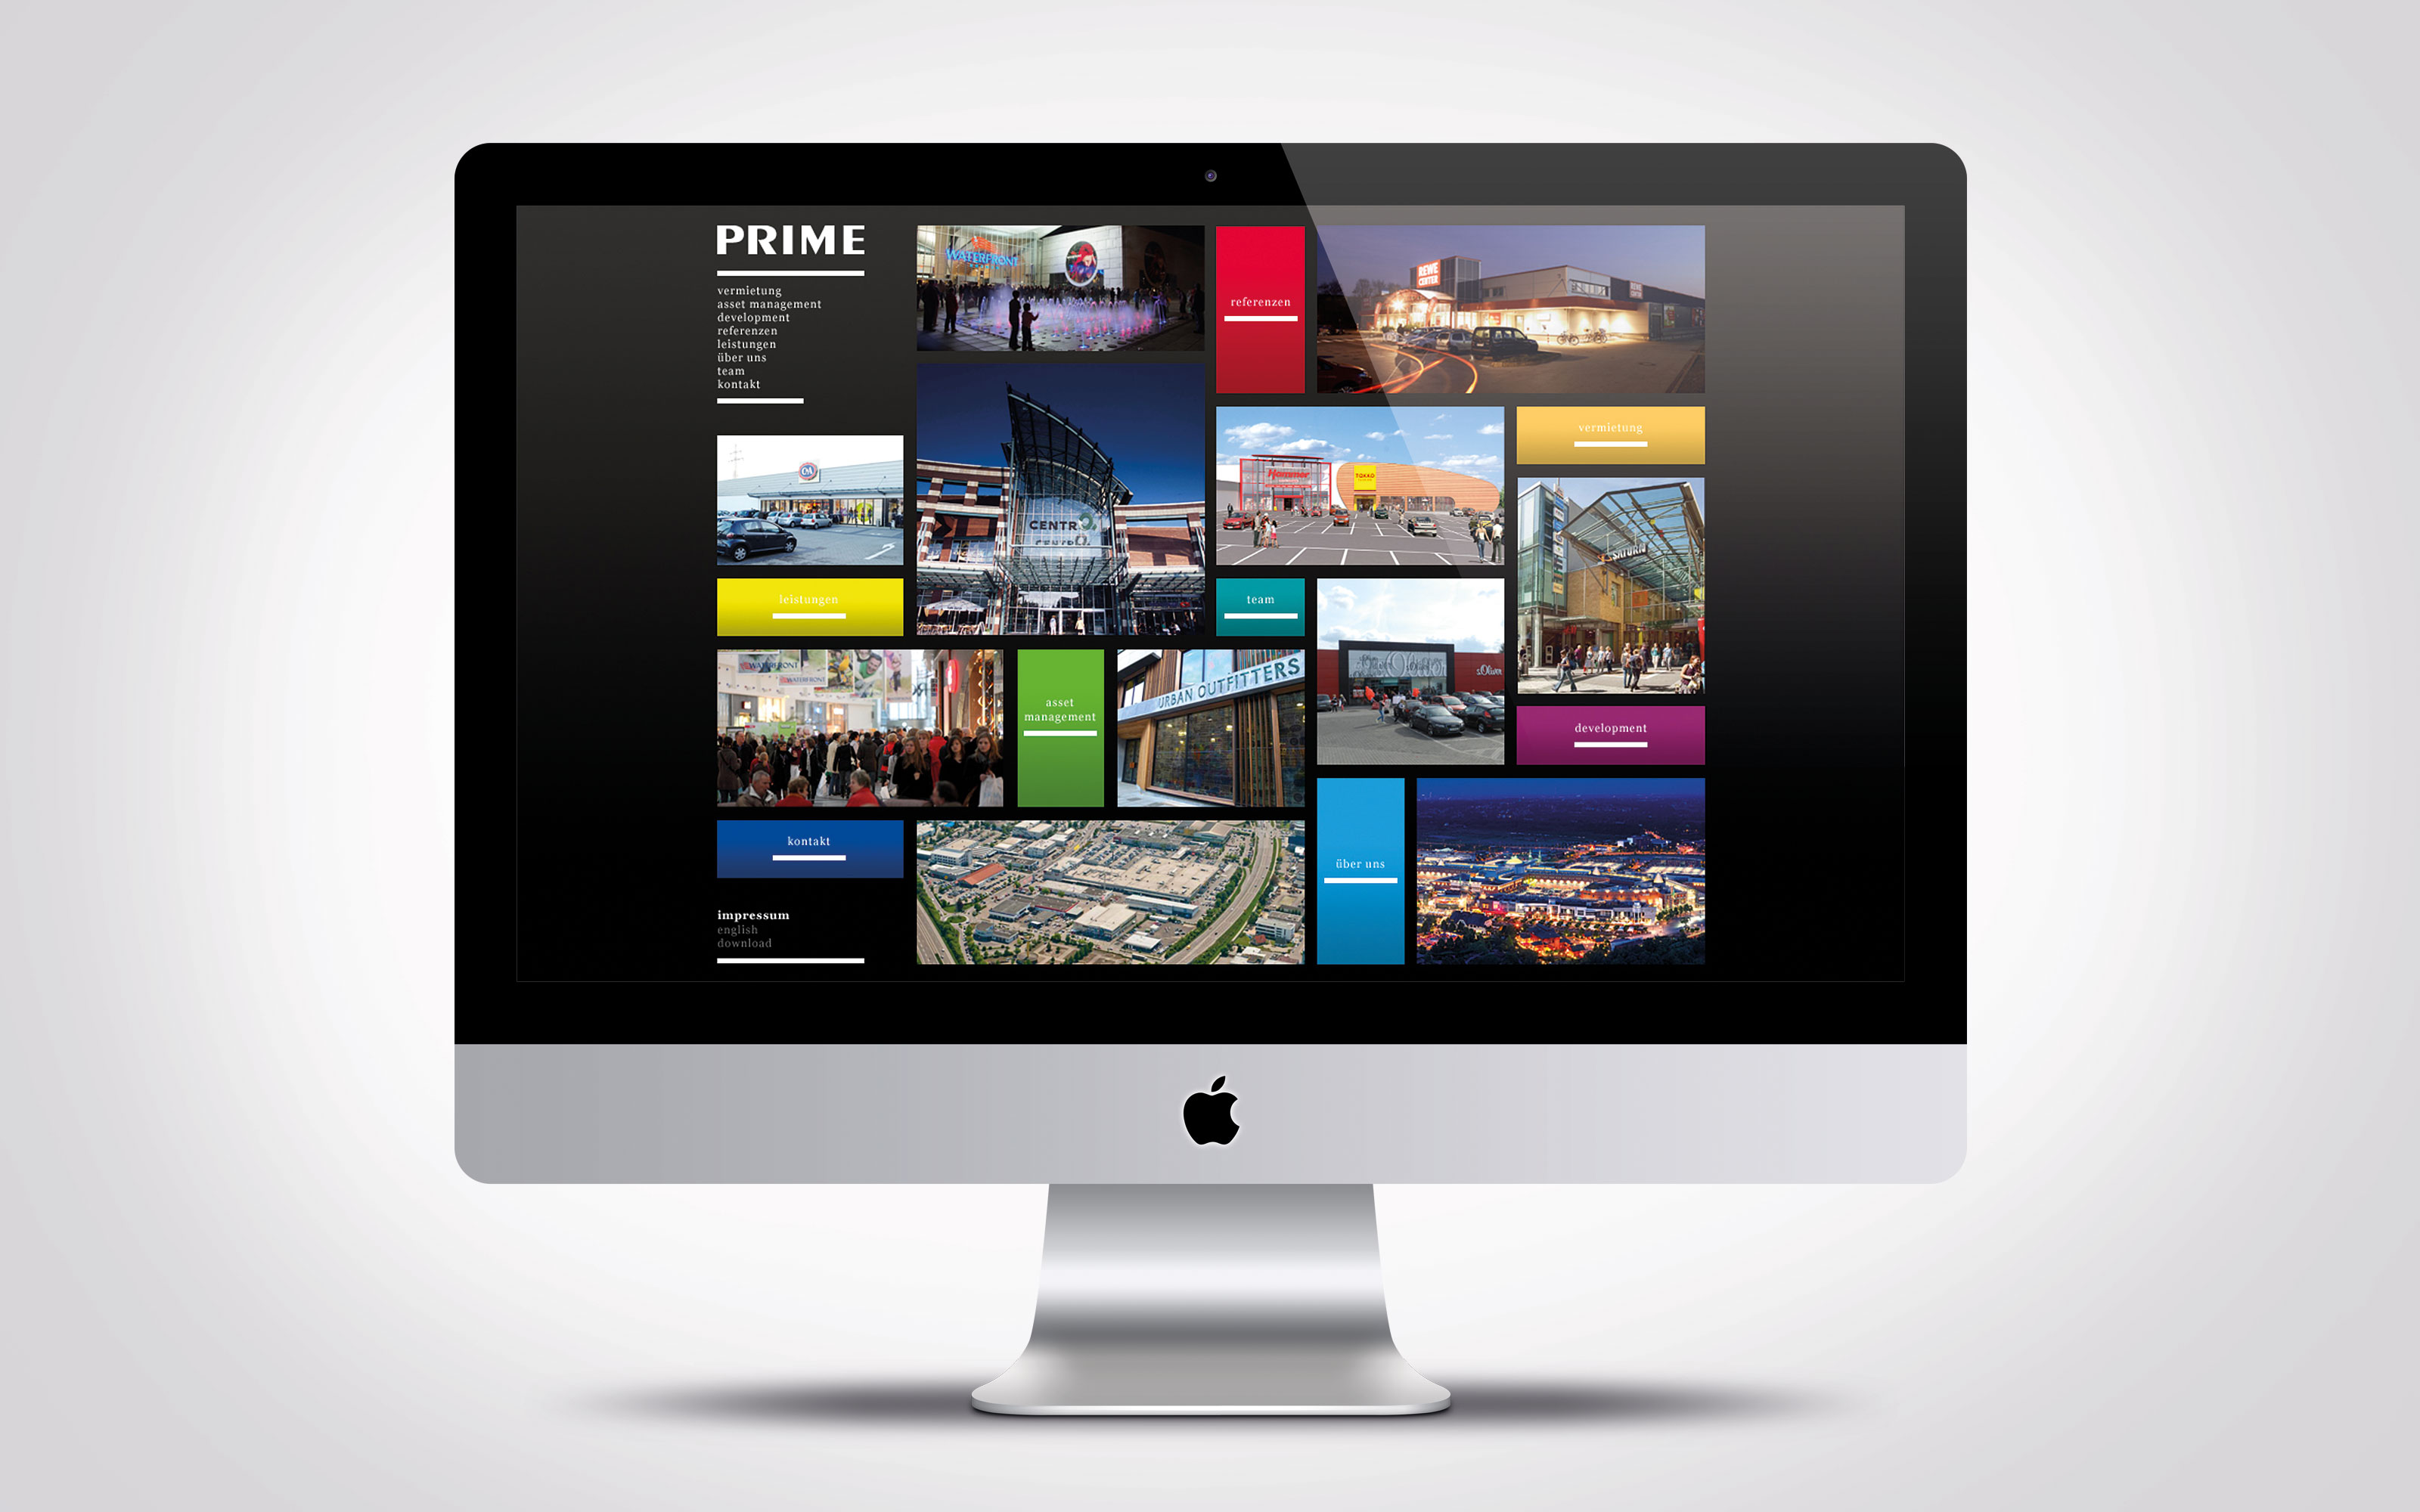 maniana-design_webseite_prime-real-estate_01